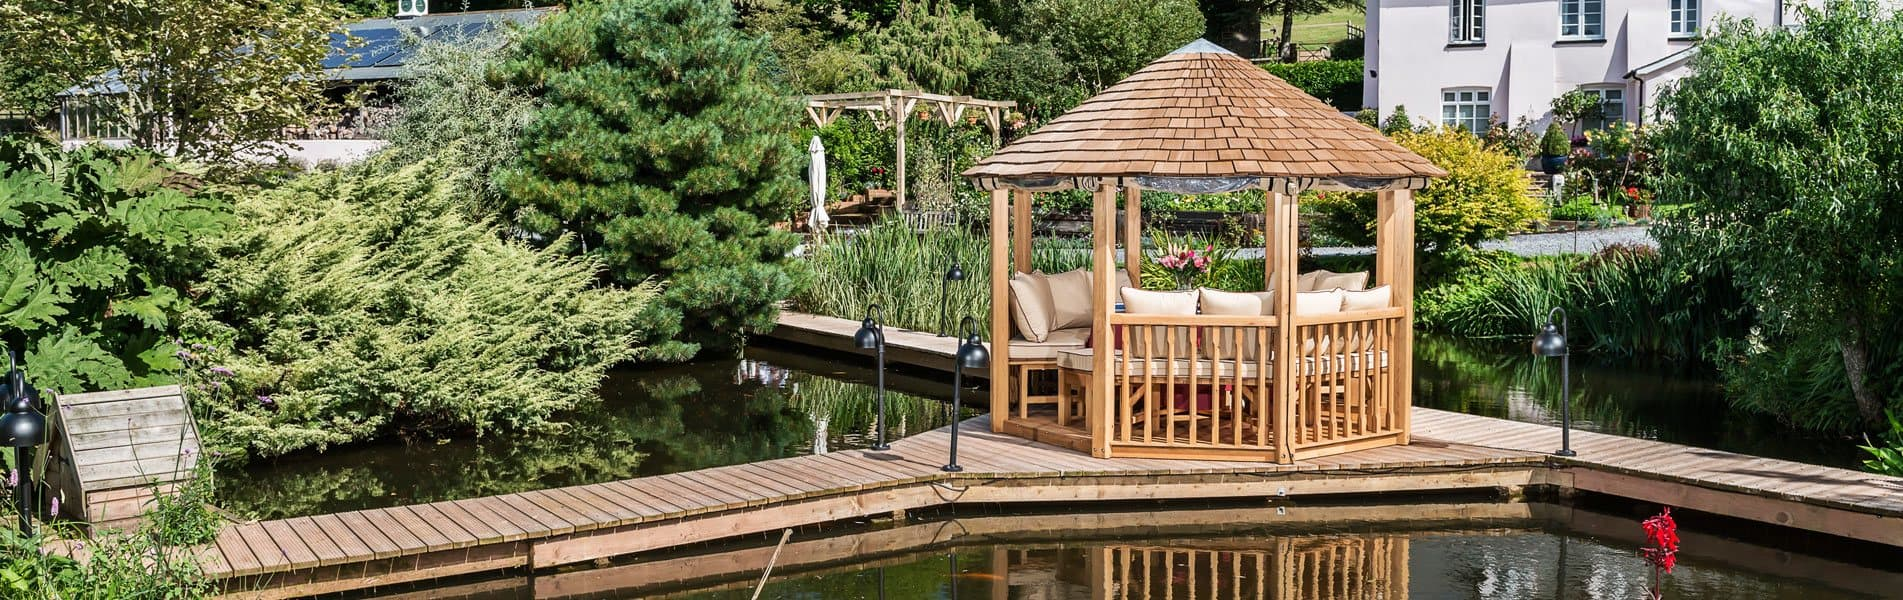 Luxury Wooden Guinevere Pavilion